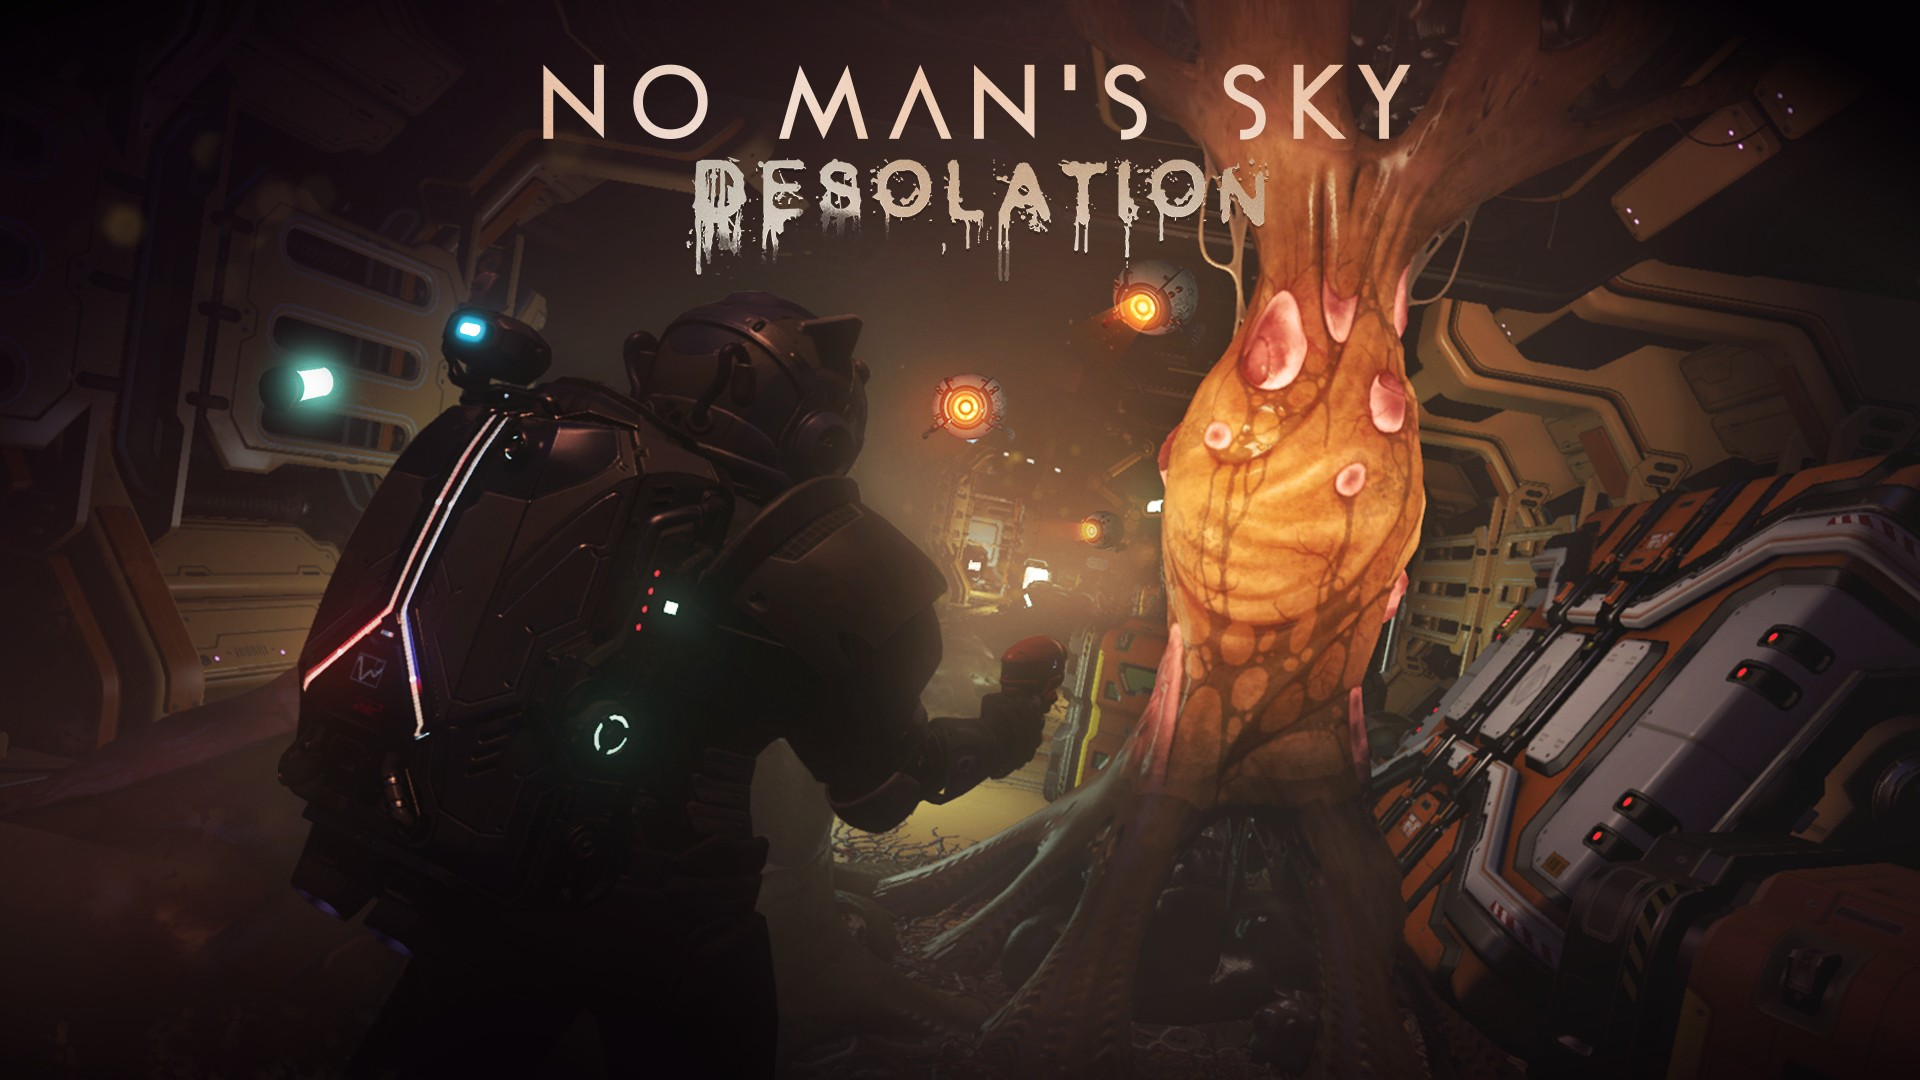 Video For Improved Combat, Deeper Space Exploration in Latest No Man's Sky Desolation Update